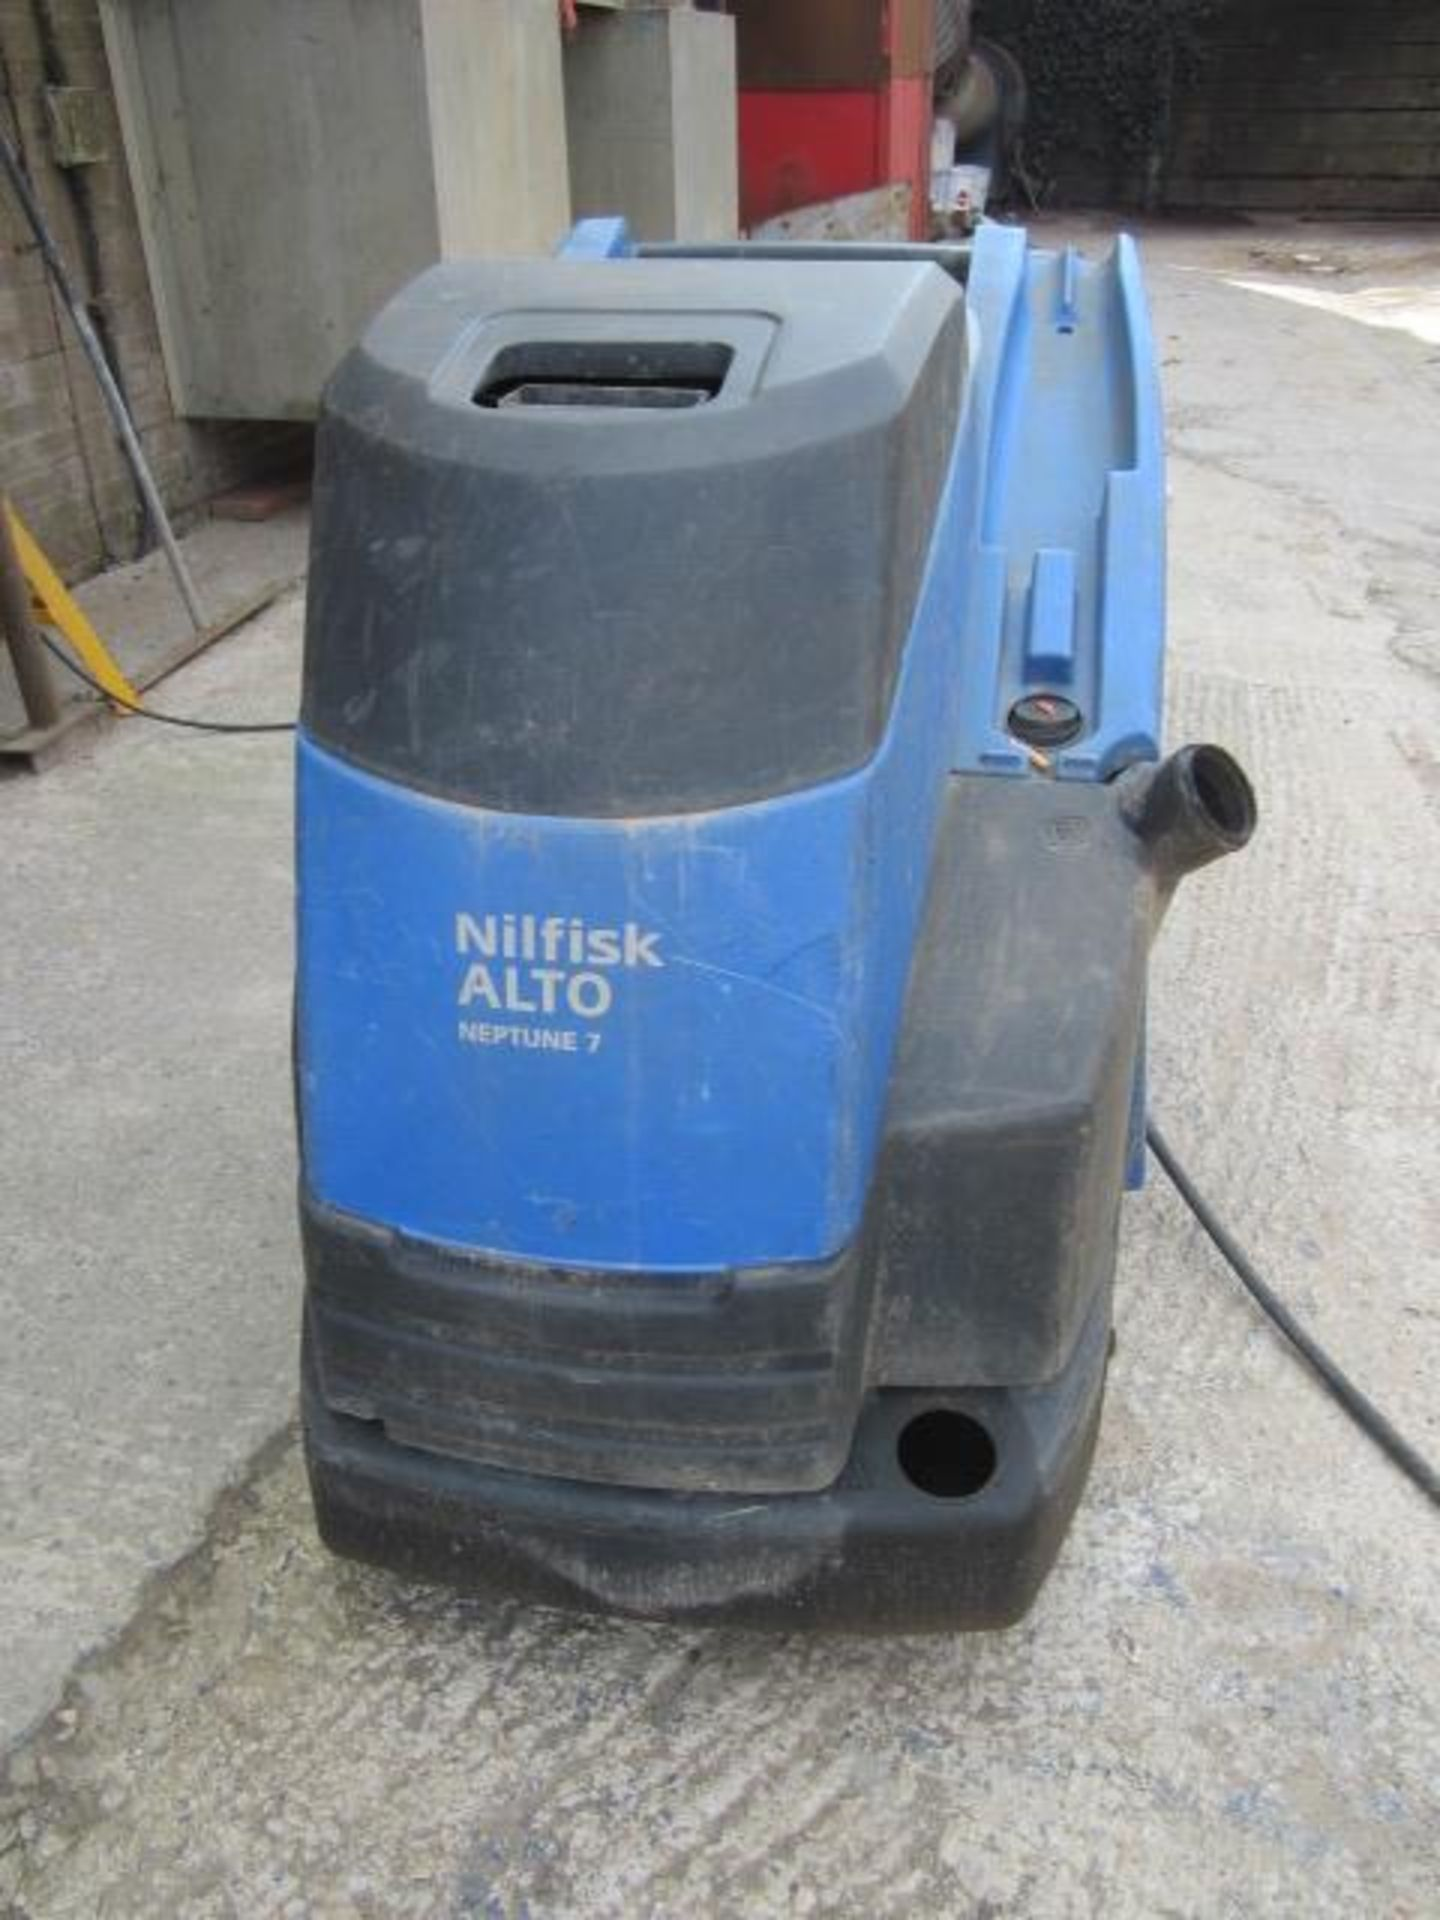 Nilfisk Alto Neptune 7 mobile steam cleaner with hose and lance - Image 2 of 5